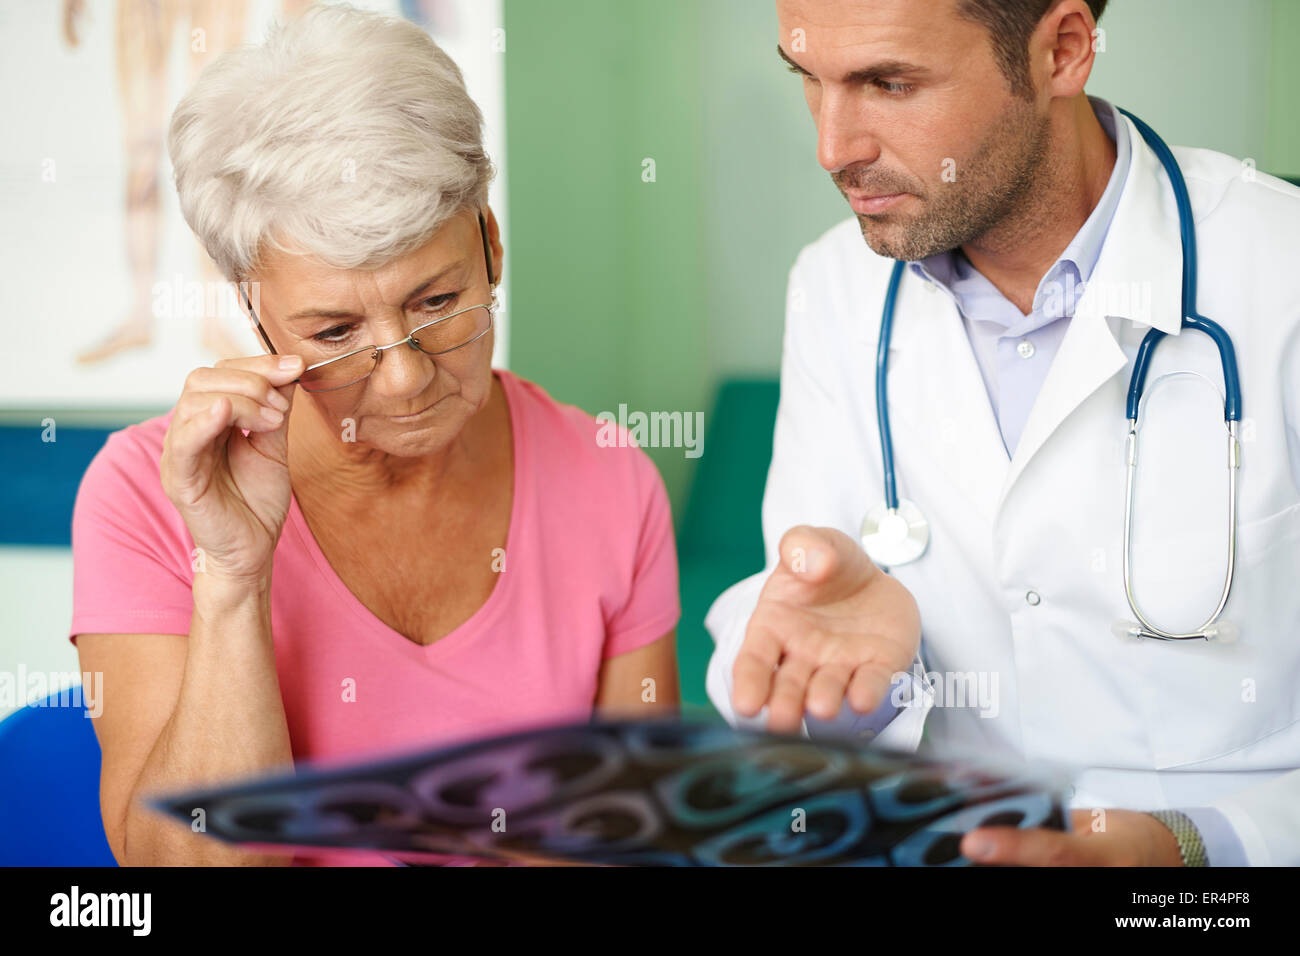 Doctor with his senior patient analyzing medical test. Debica, Poland - Stock Image